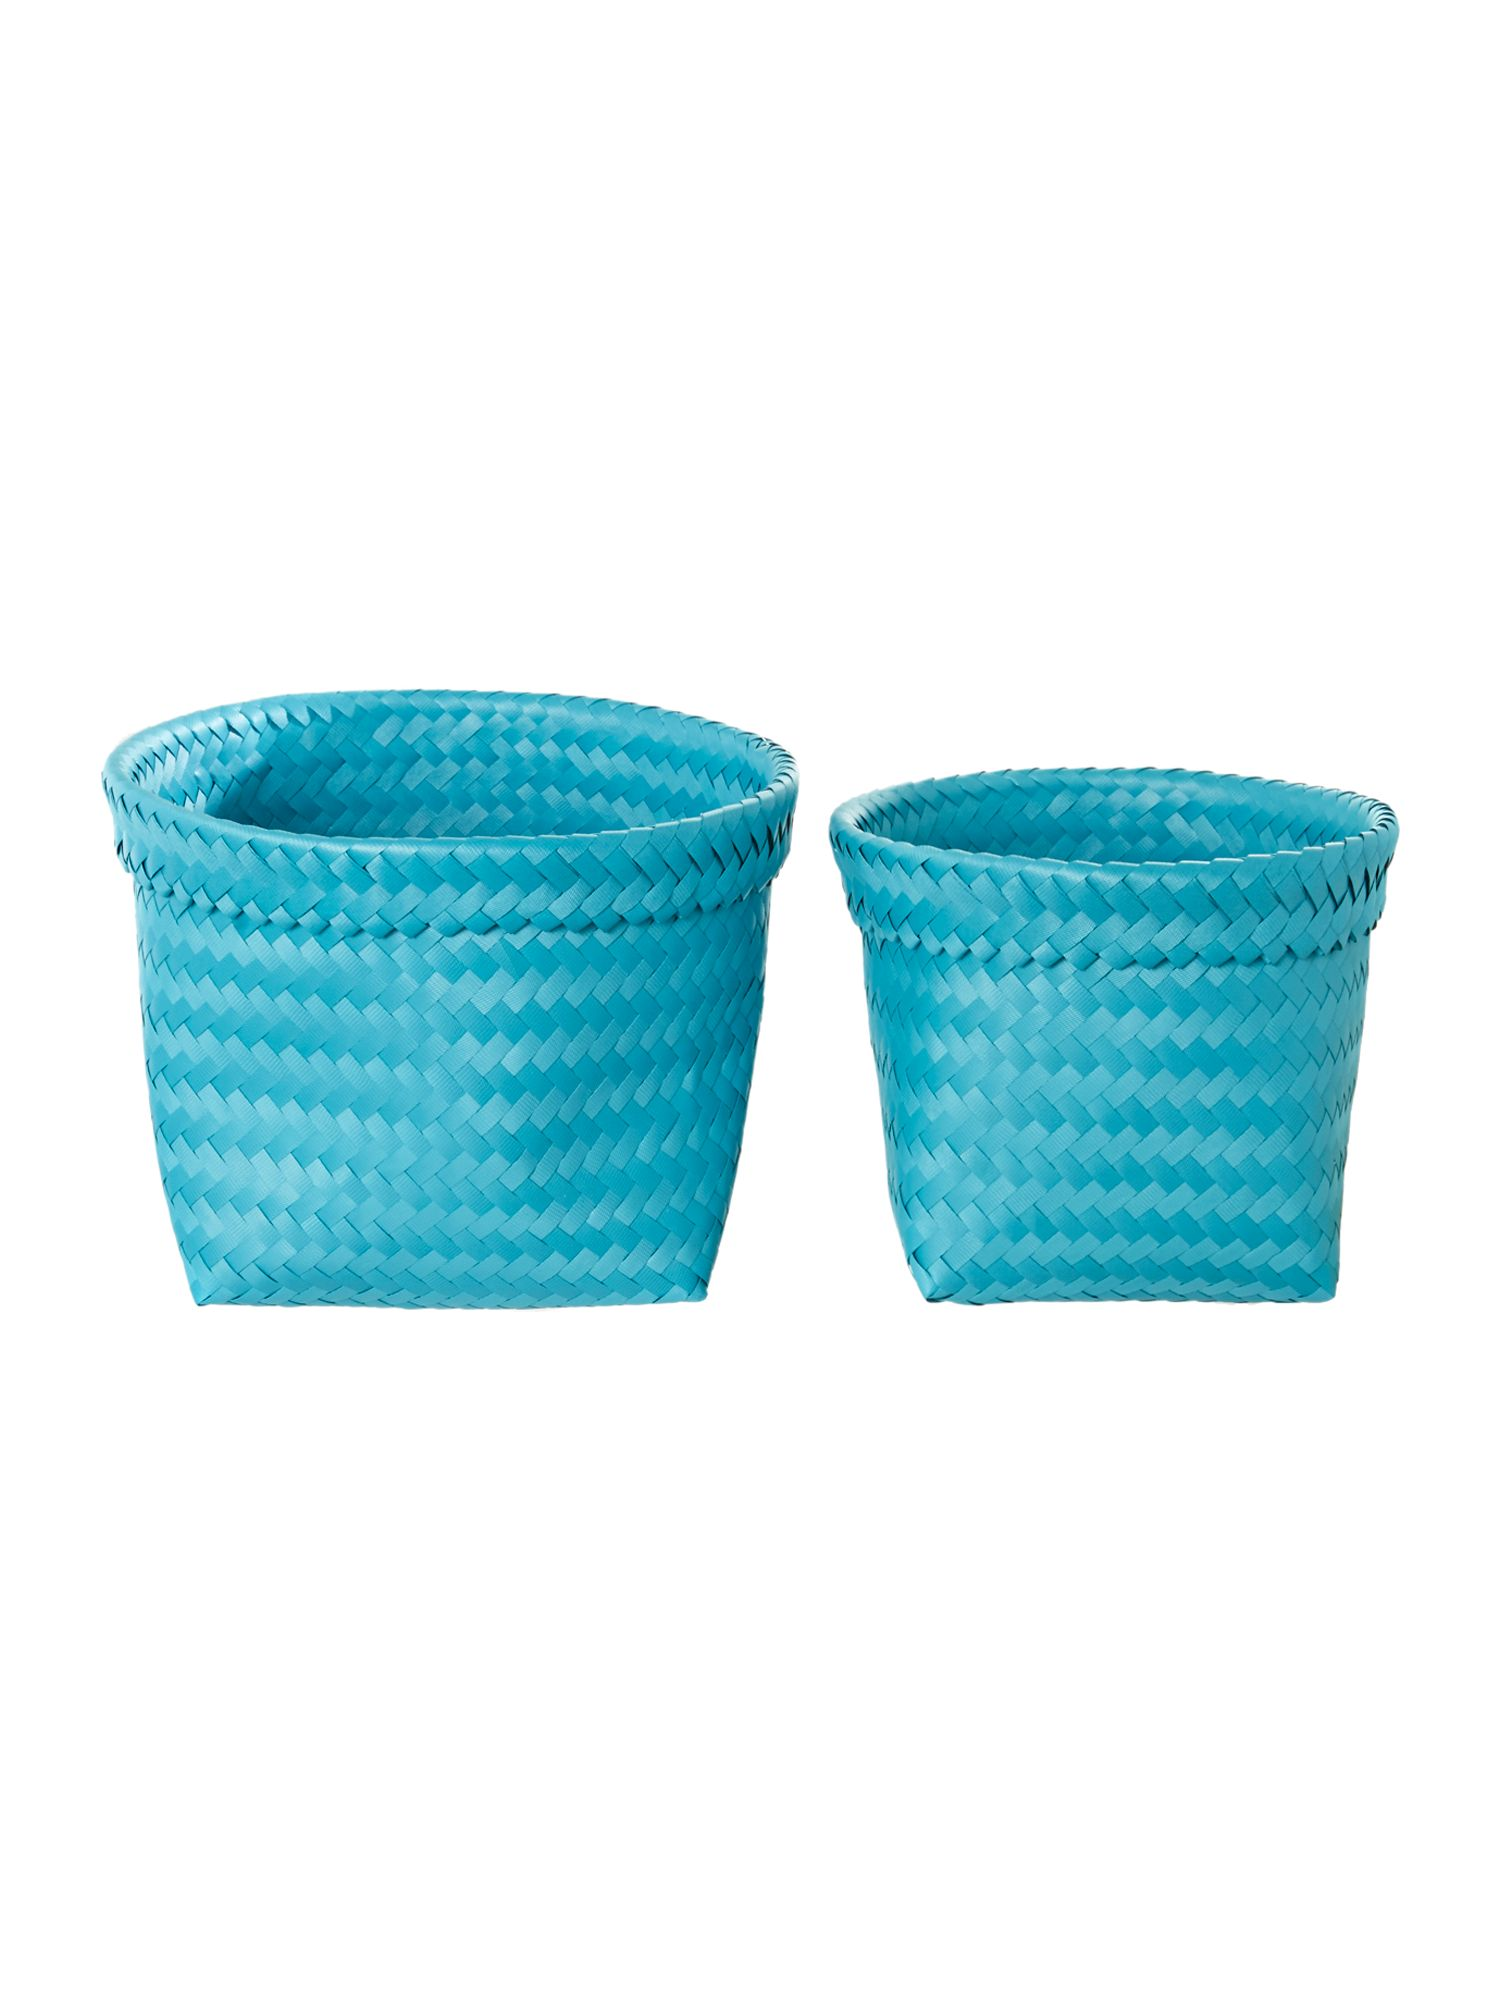 Set of 2 woven baskets blue